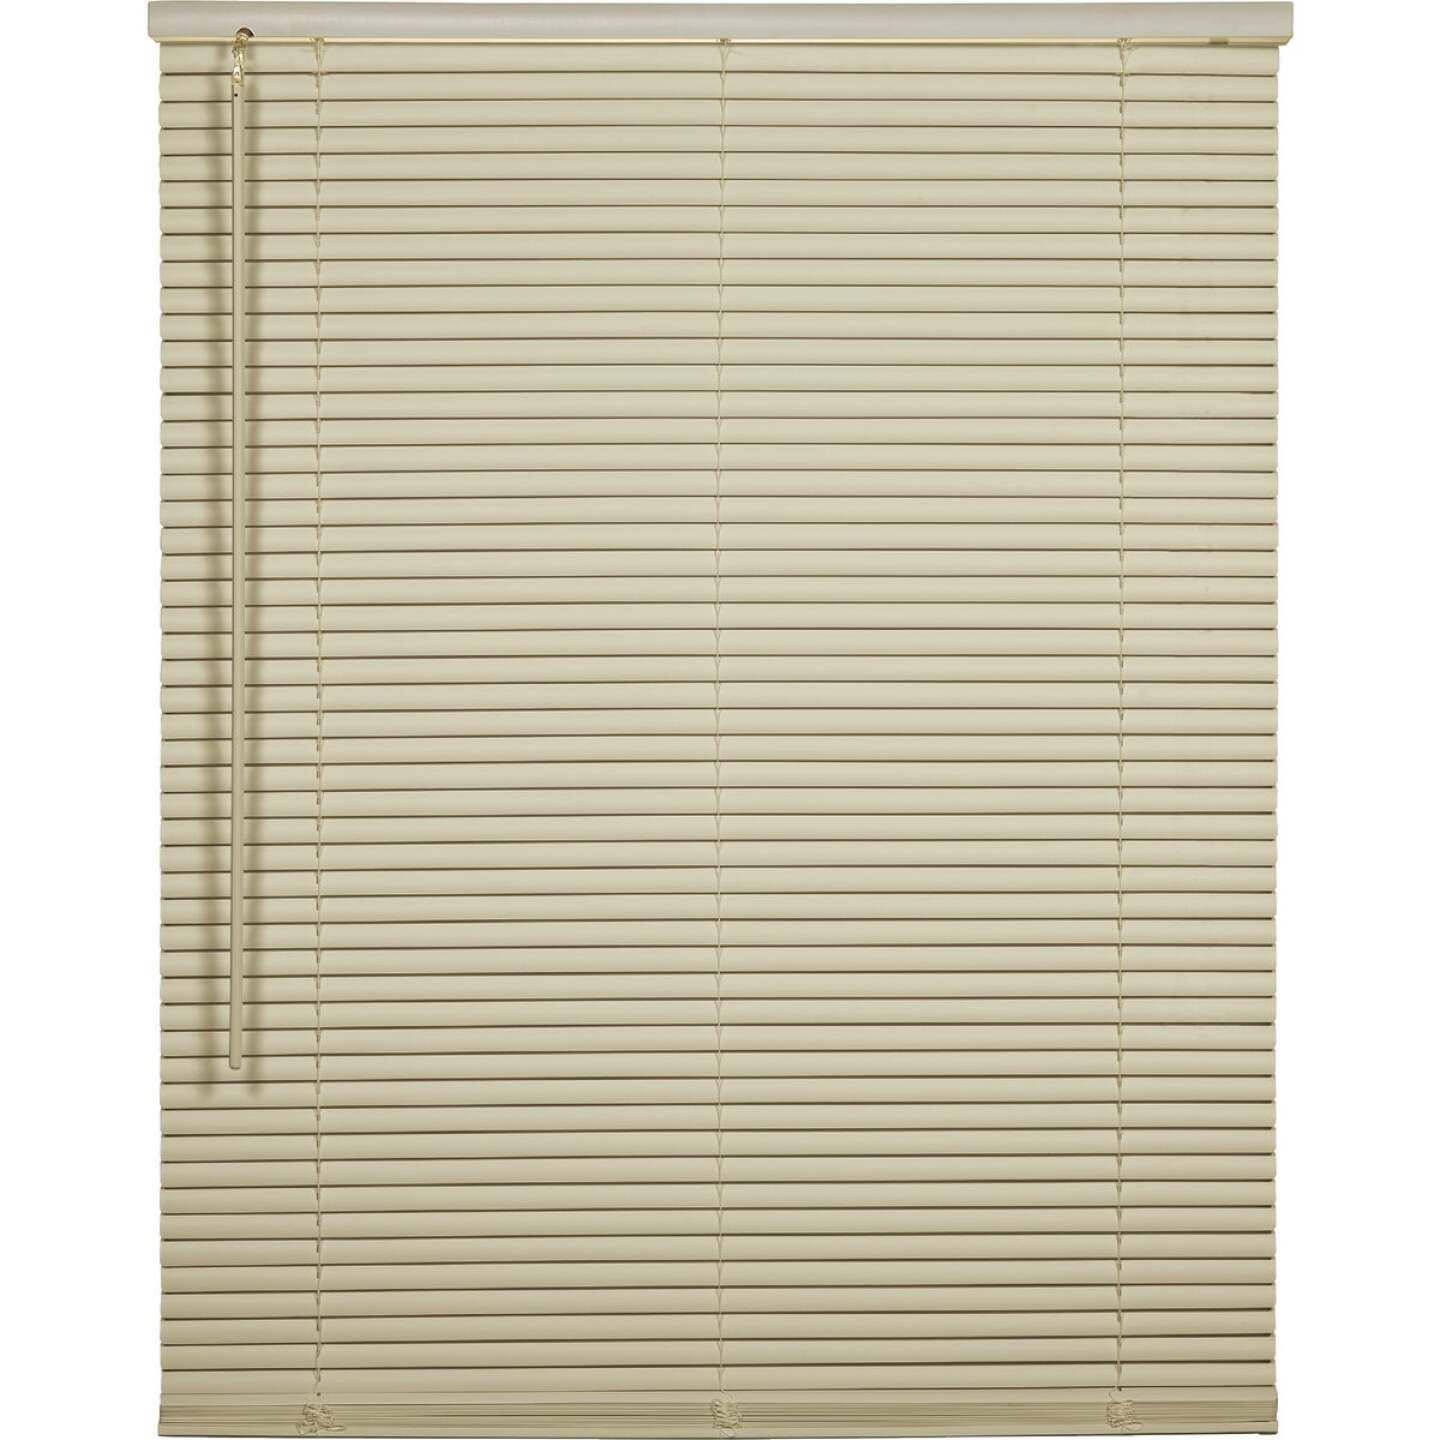 Home Impressions 46 In. x 64 In. x 1 In. Vanilla Vinyl Light Filtering Cordless Mini Blind Image 1